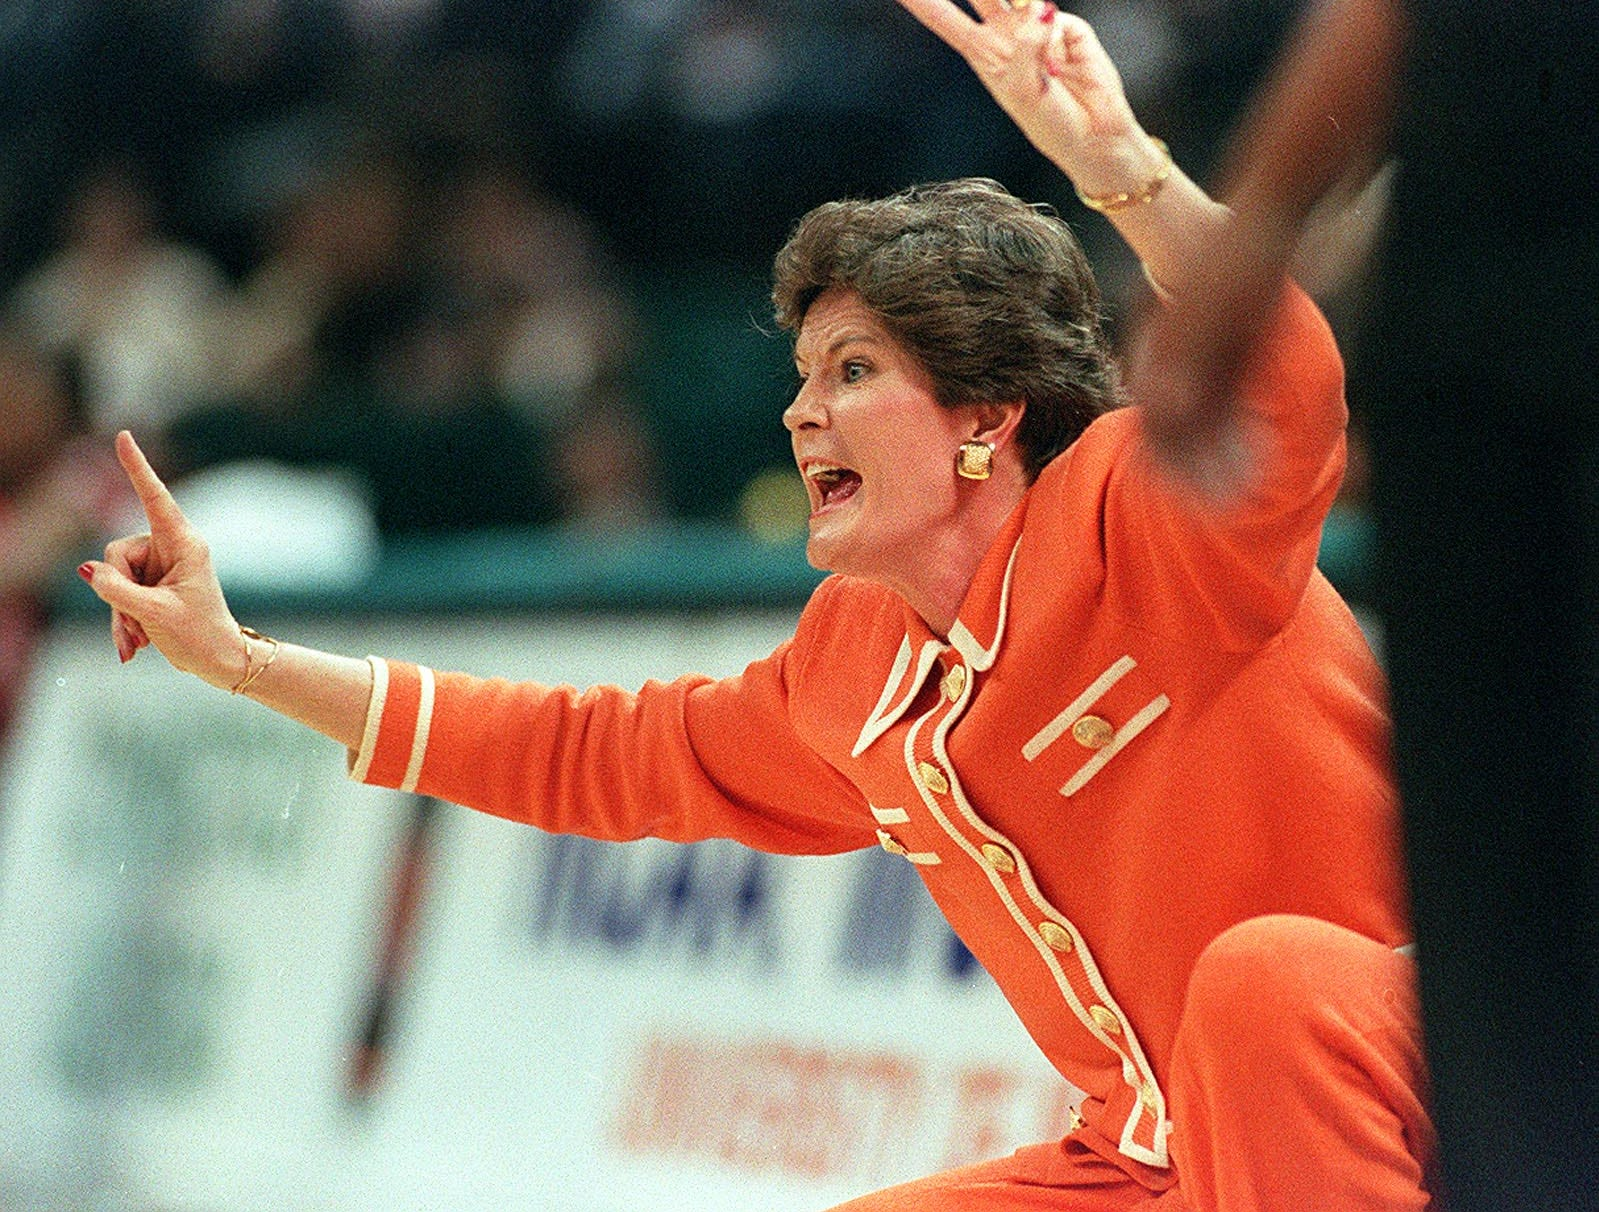 Lady Vols head coach Pat Summitt gives instructions from the sidelines during the Final Four in Charlotte, NC. 1996.